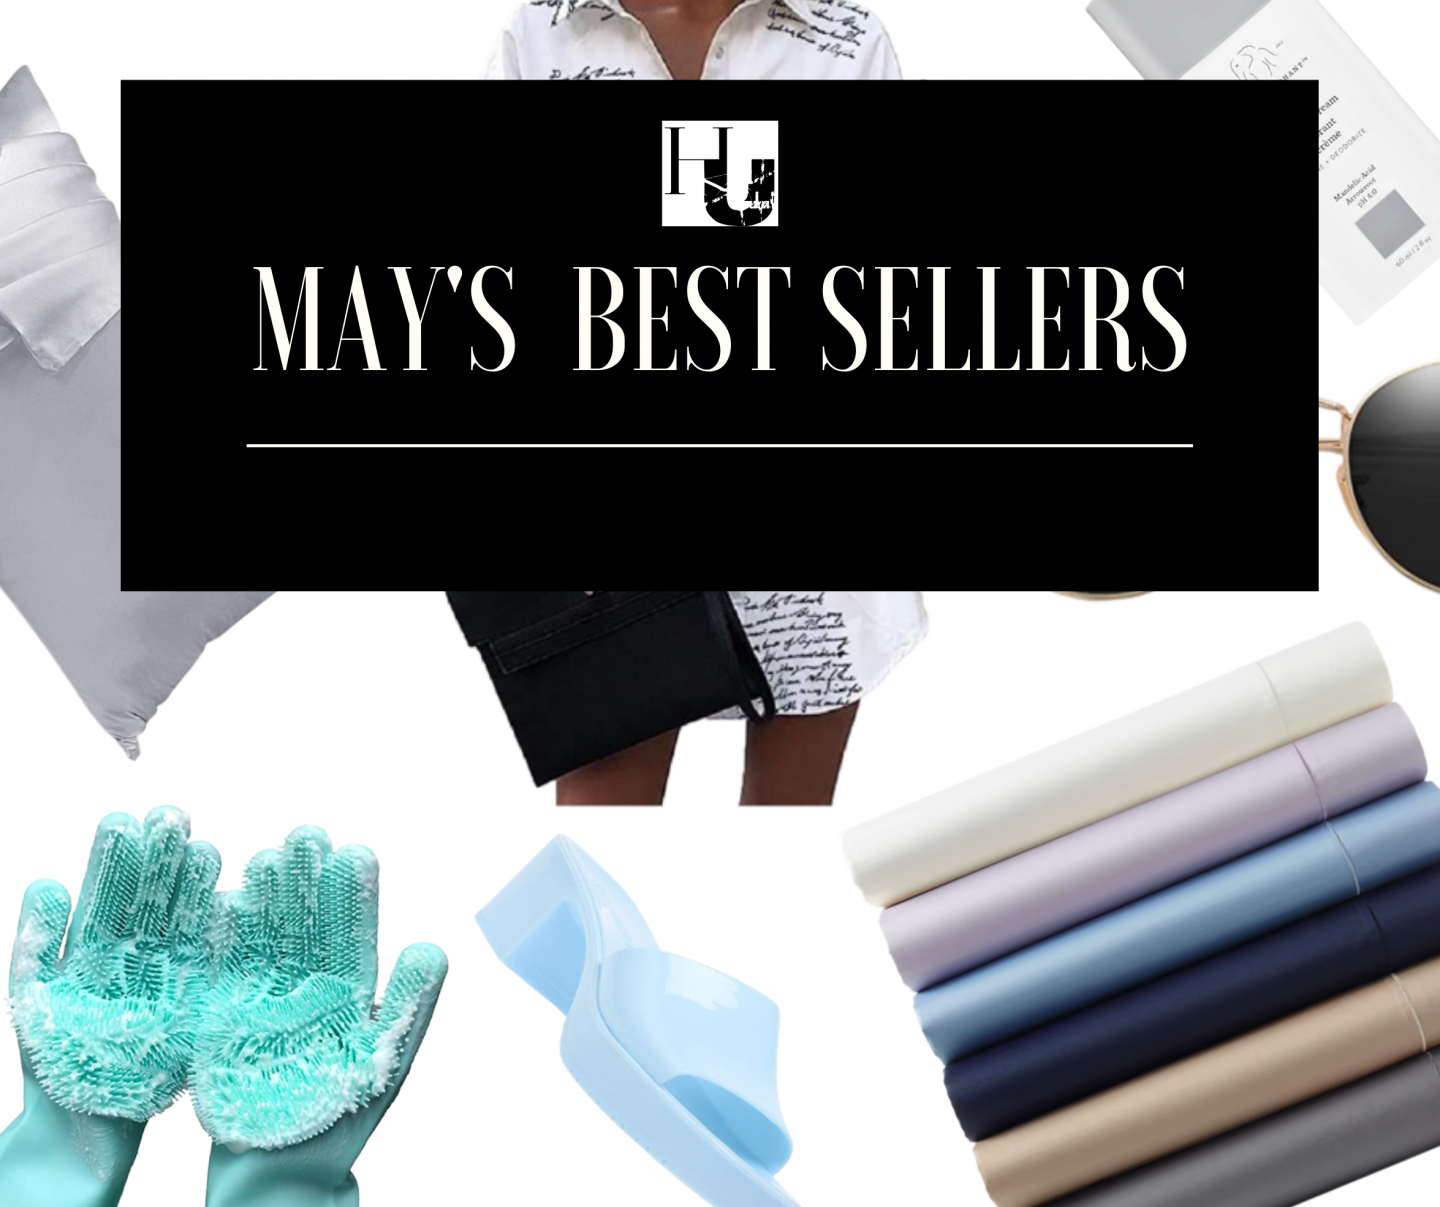 May's Best Sellers